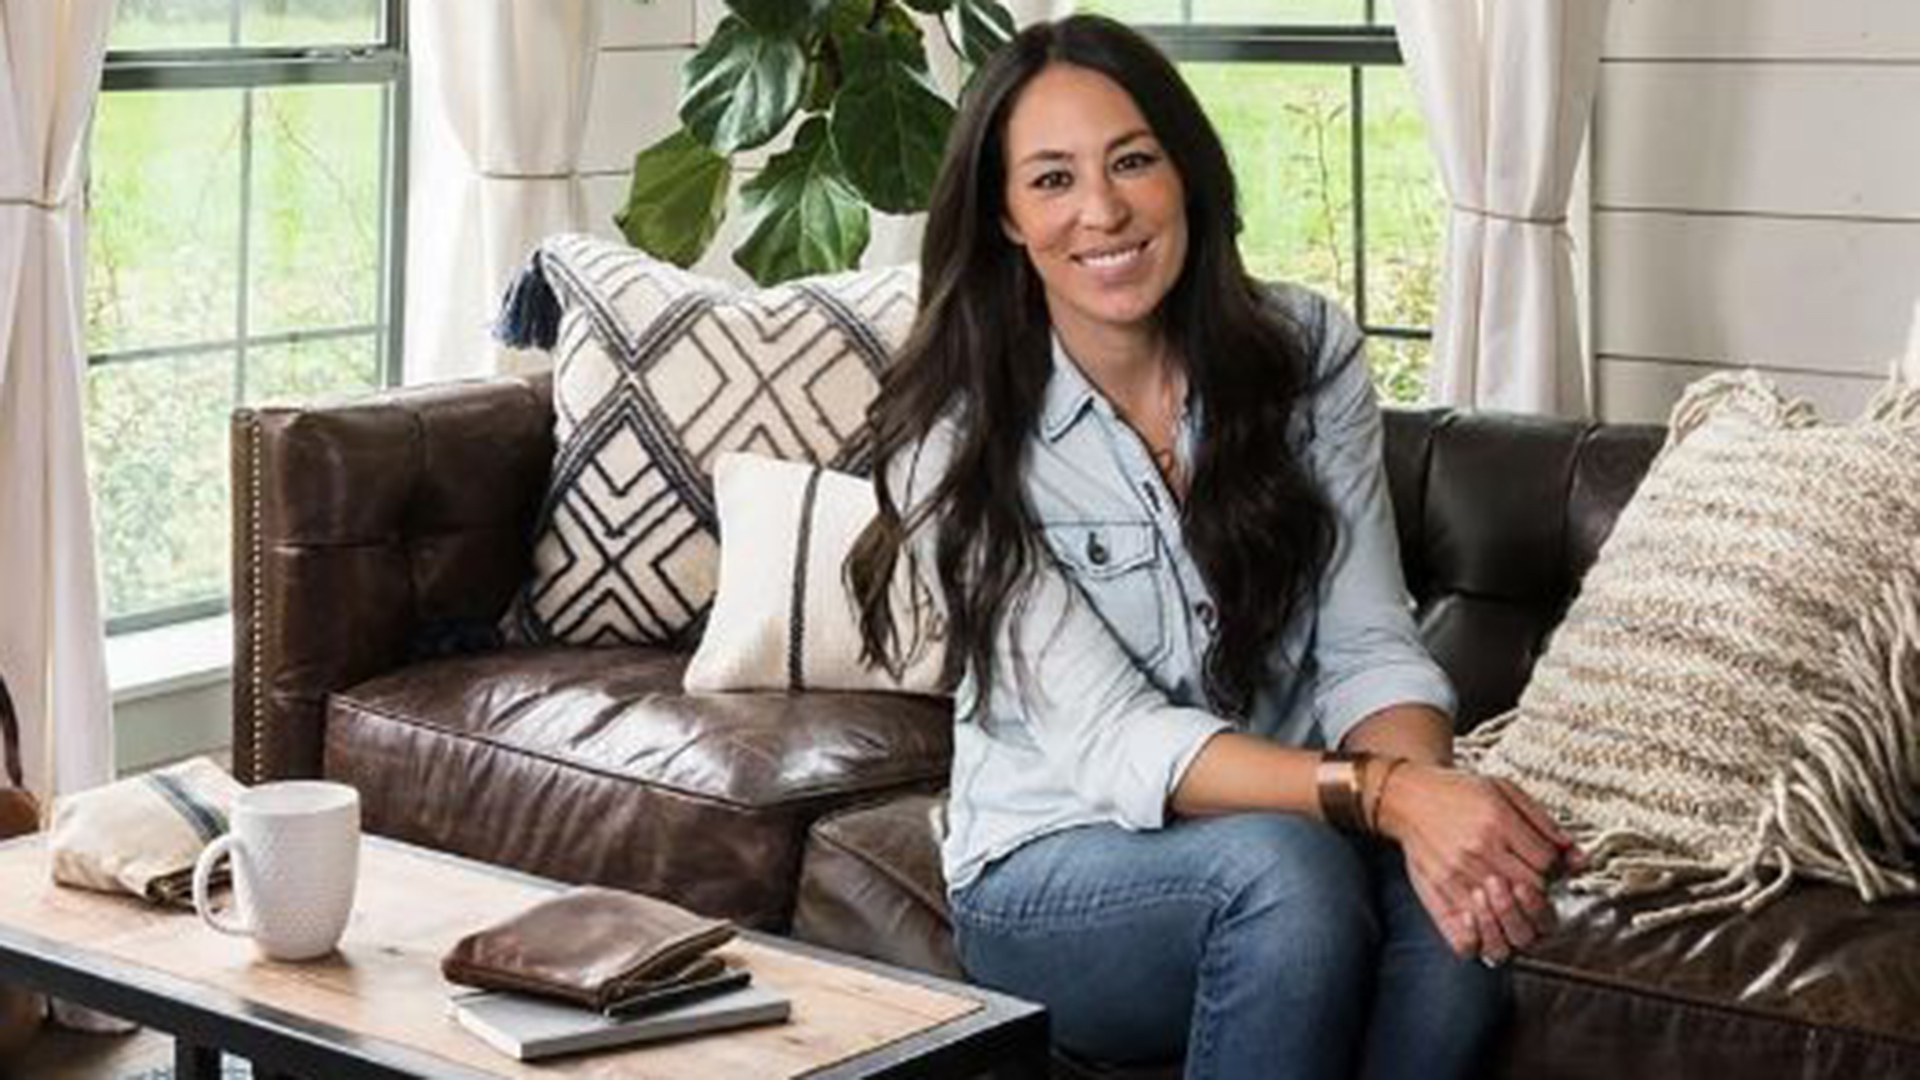 This Is The Uniform Joanna Gaines Wears Every Day